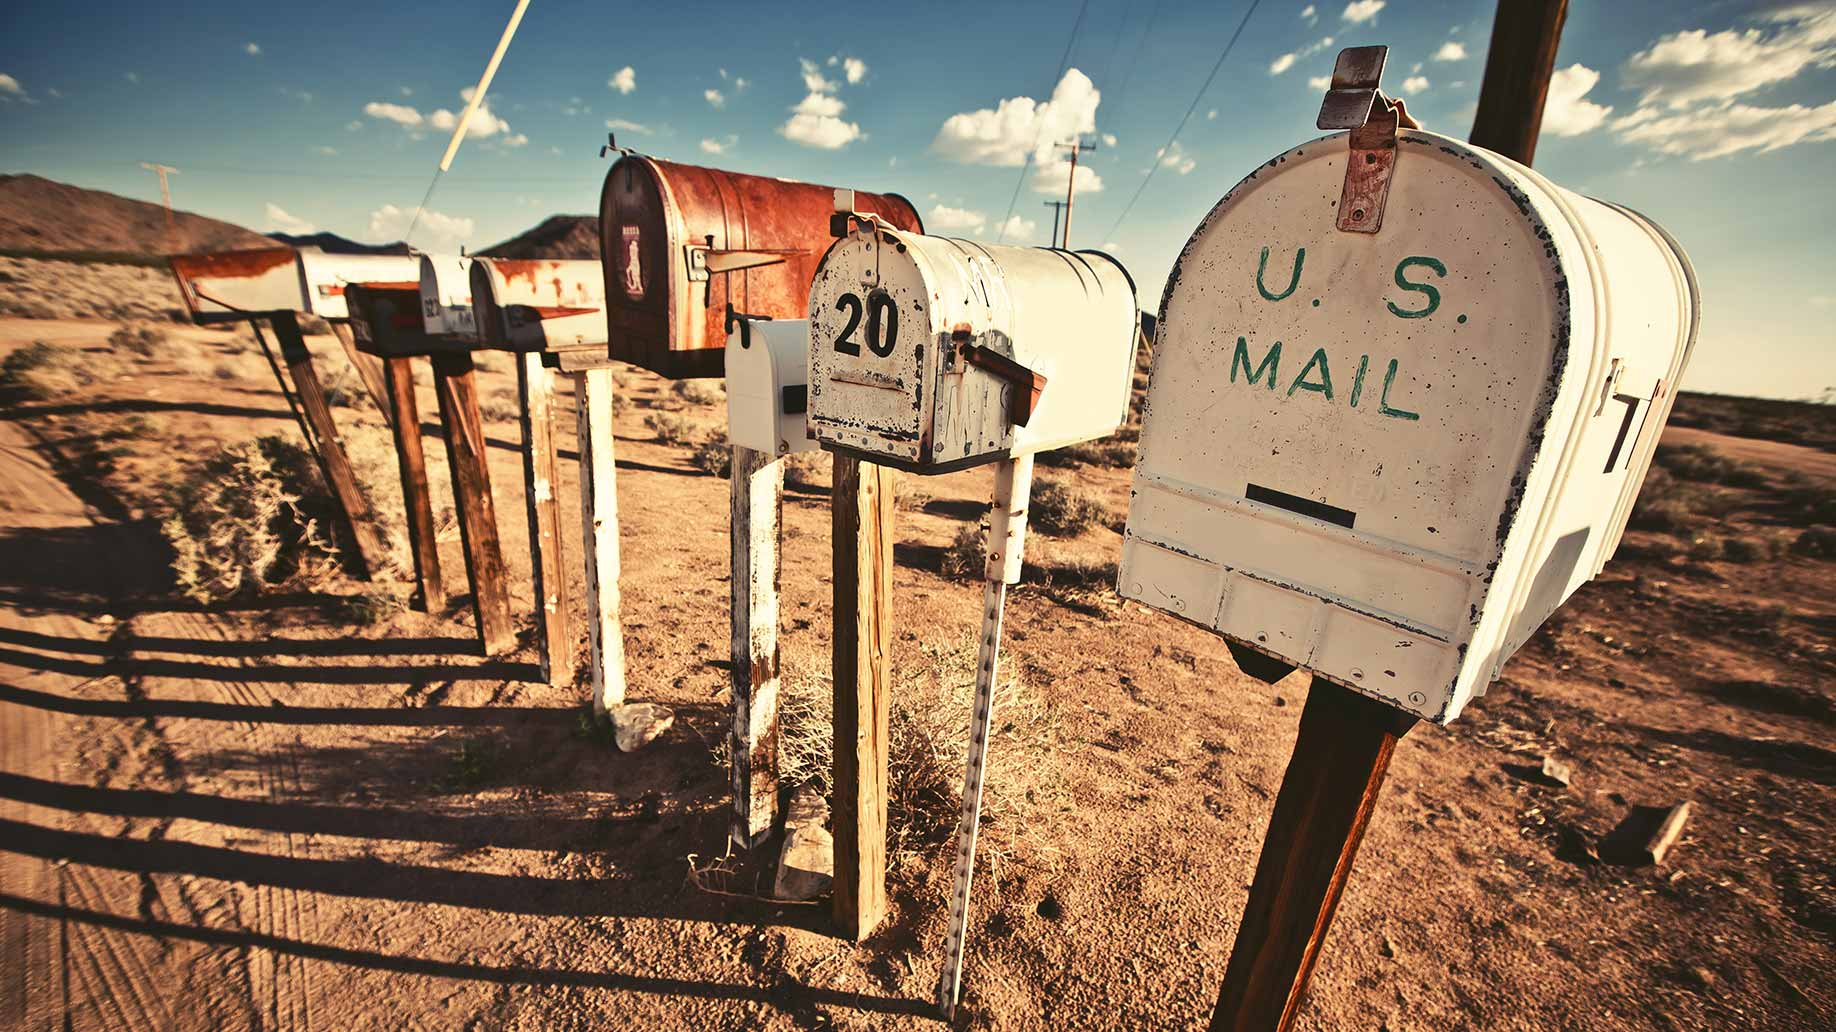 old mailboxes in the american desert